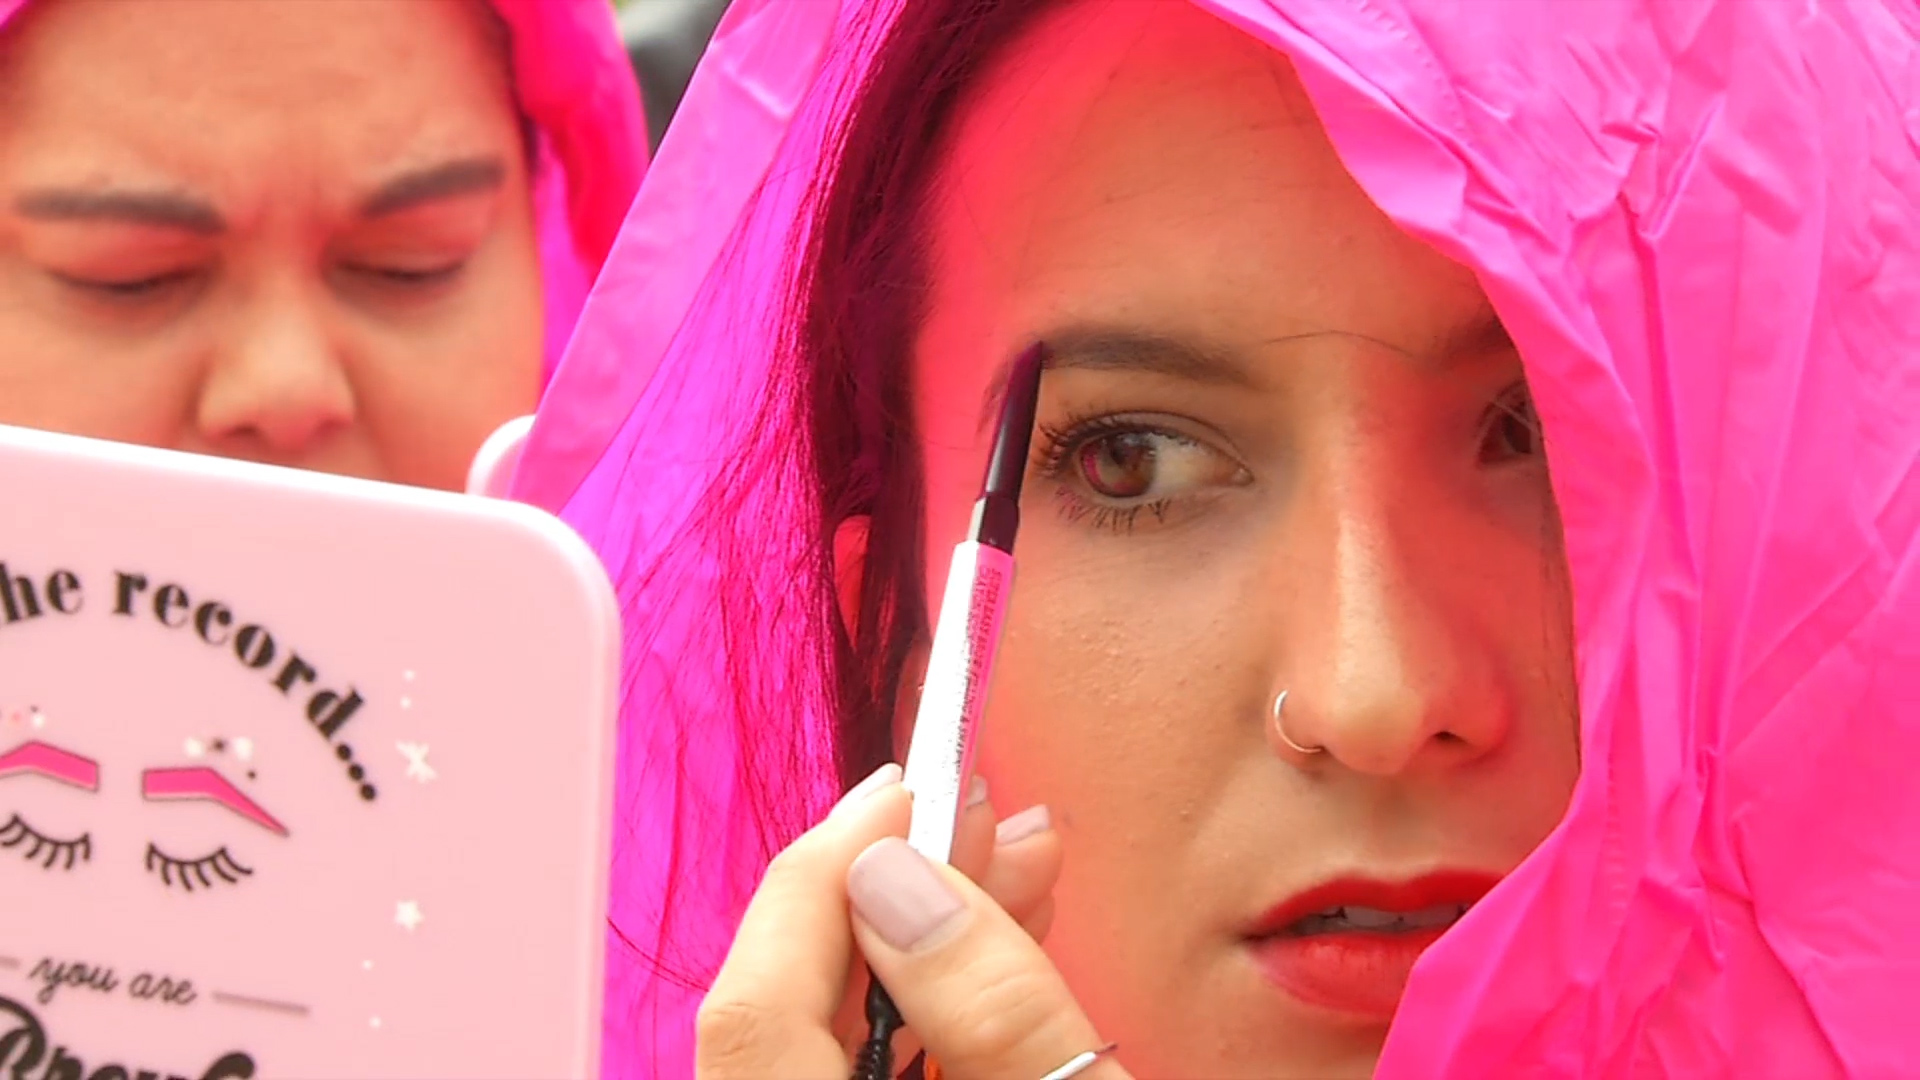 A woman fills her eyebrows with a crowd in order to break a world record in San Francisco on Sept. 28, 2018.